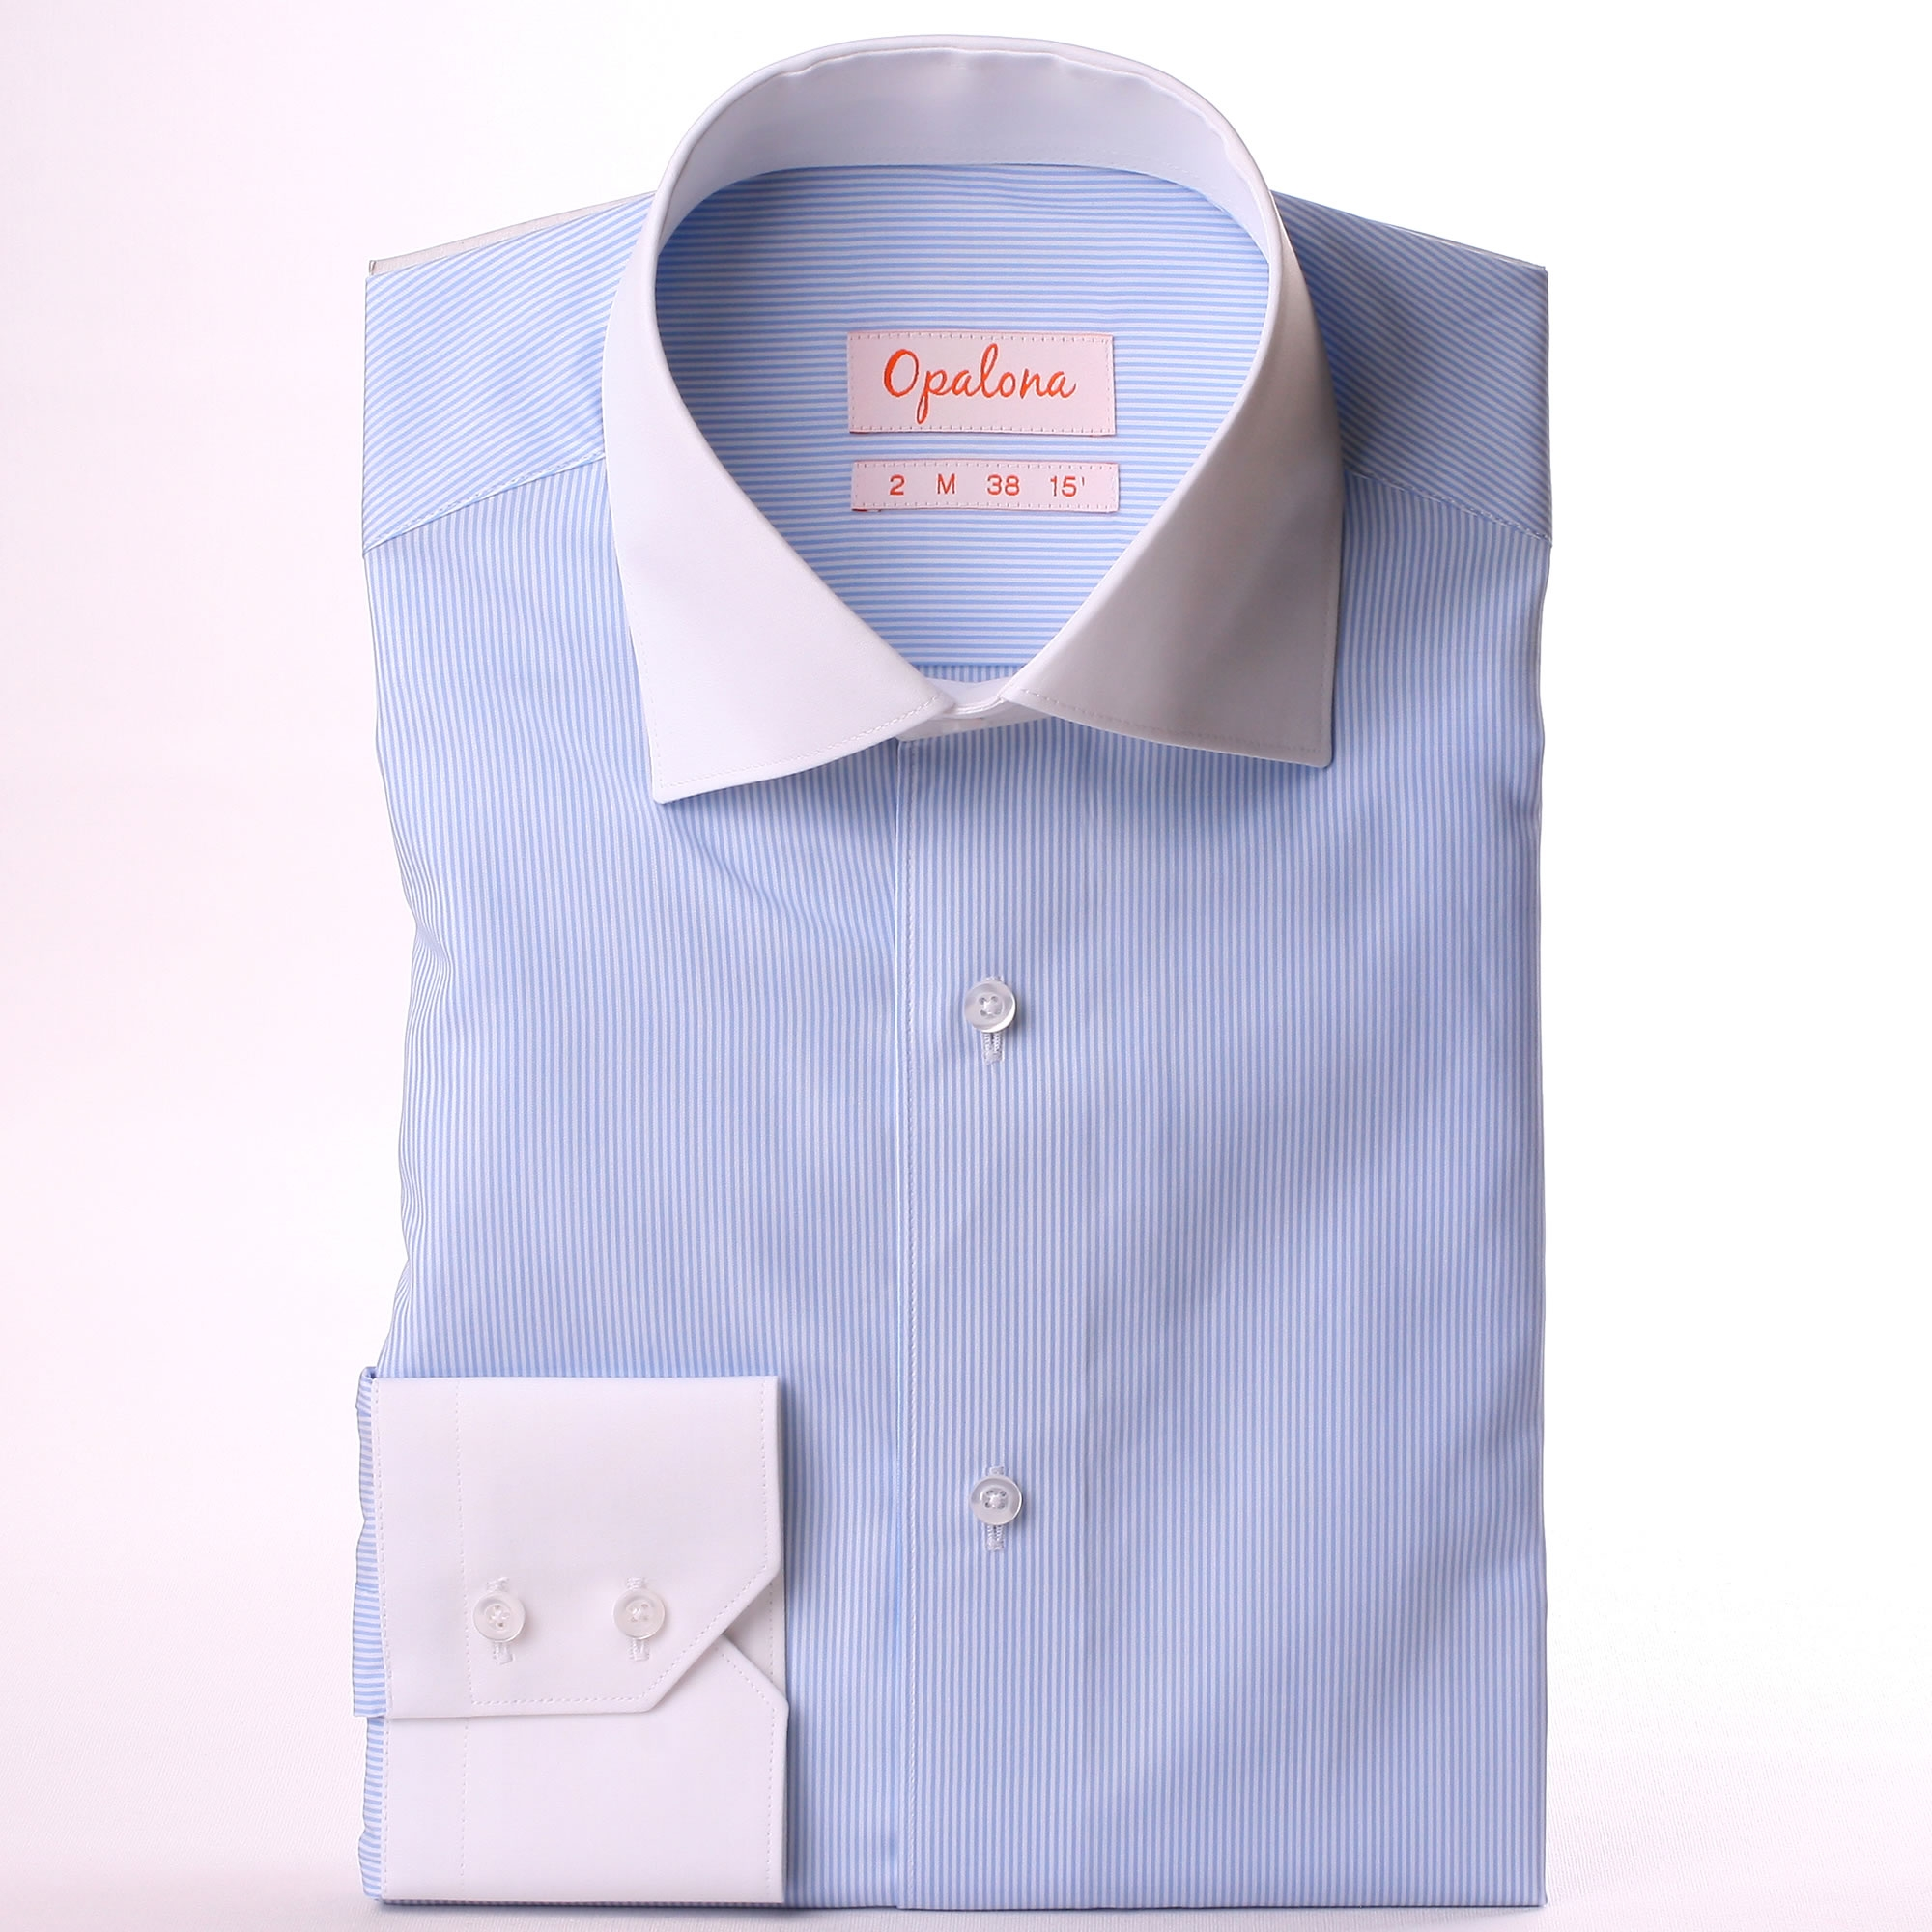 White and blue striped shirt white collar and cuffs for Blue and white striped shirt with white collar